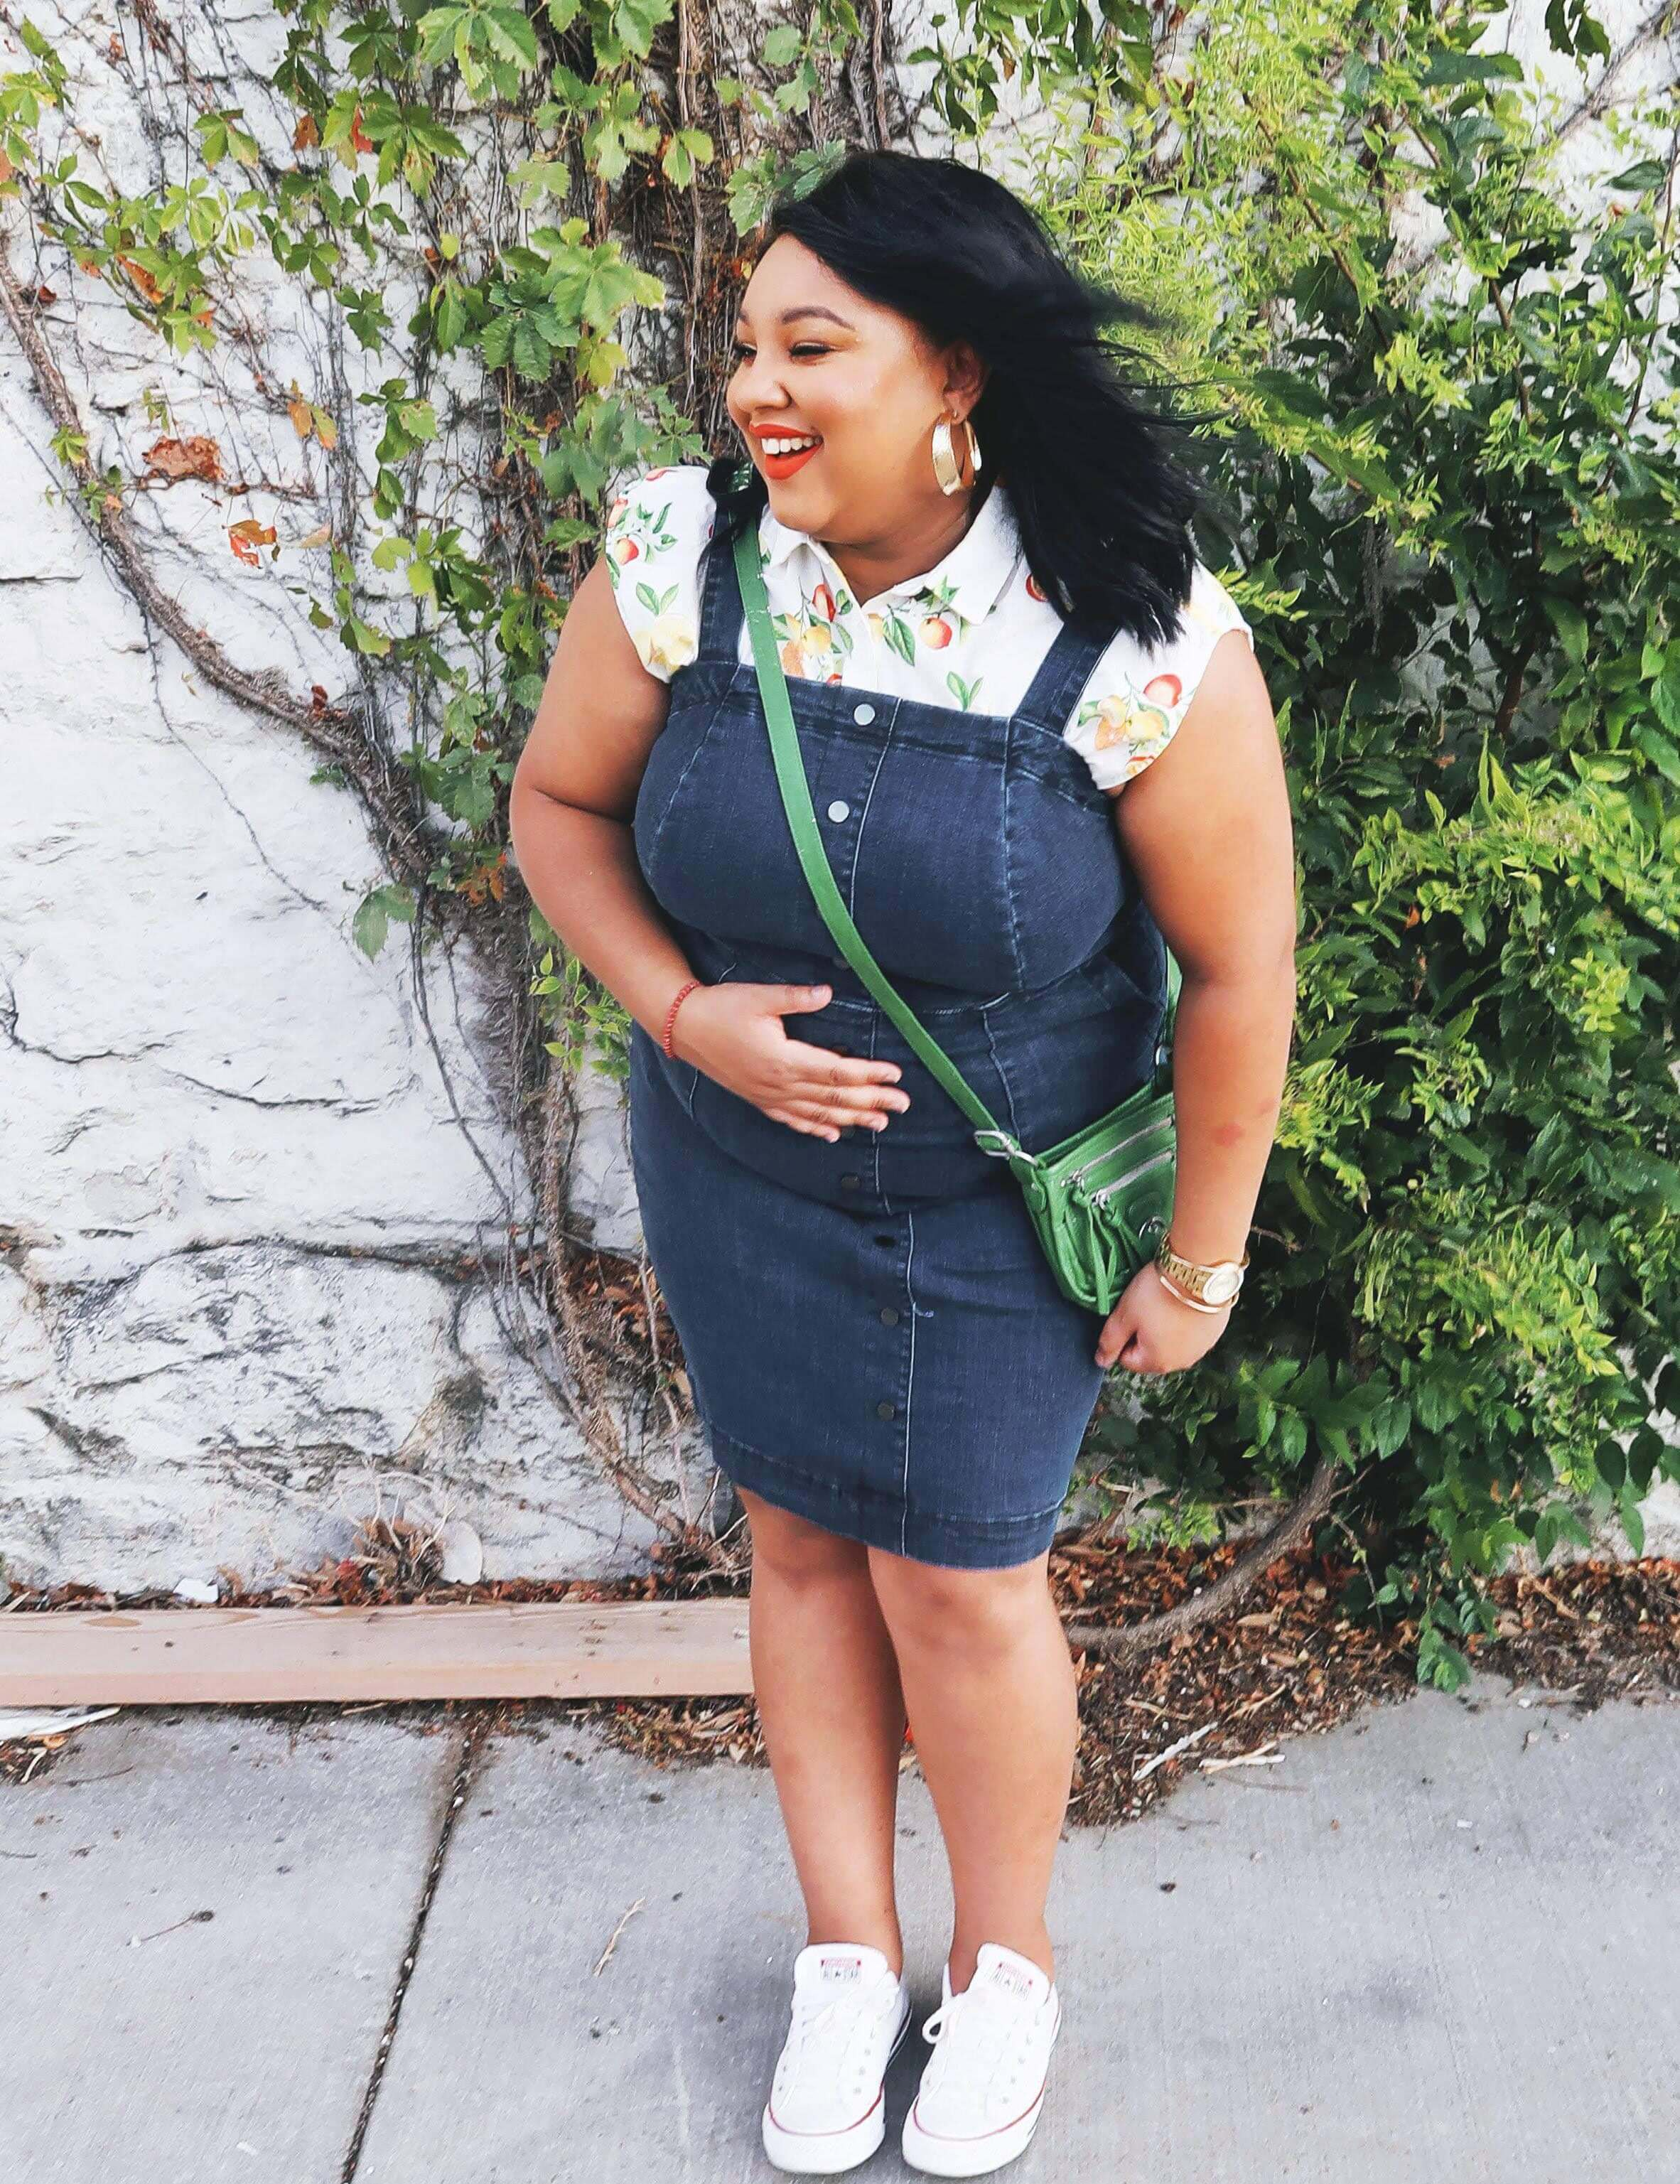 plus-size dress with sneakers denim jumper floral top white sneakers